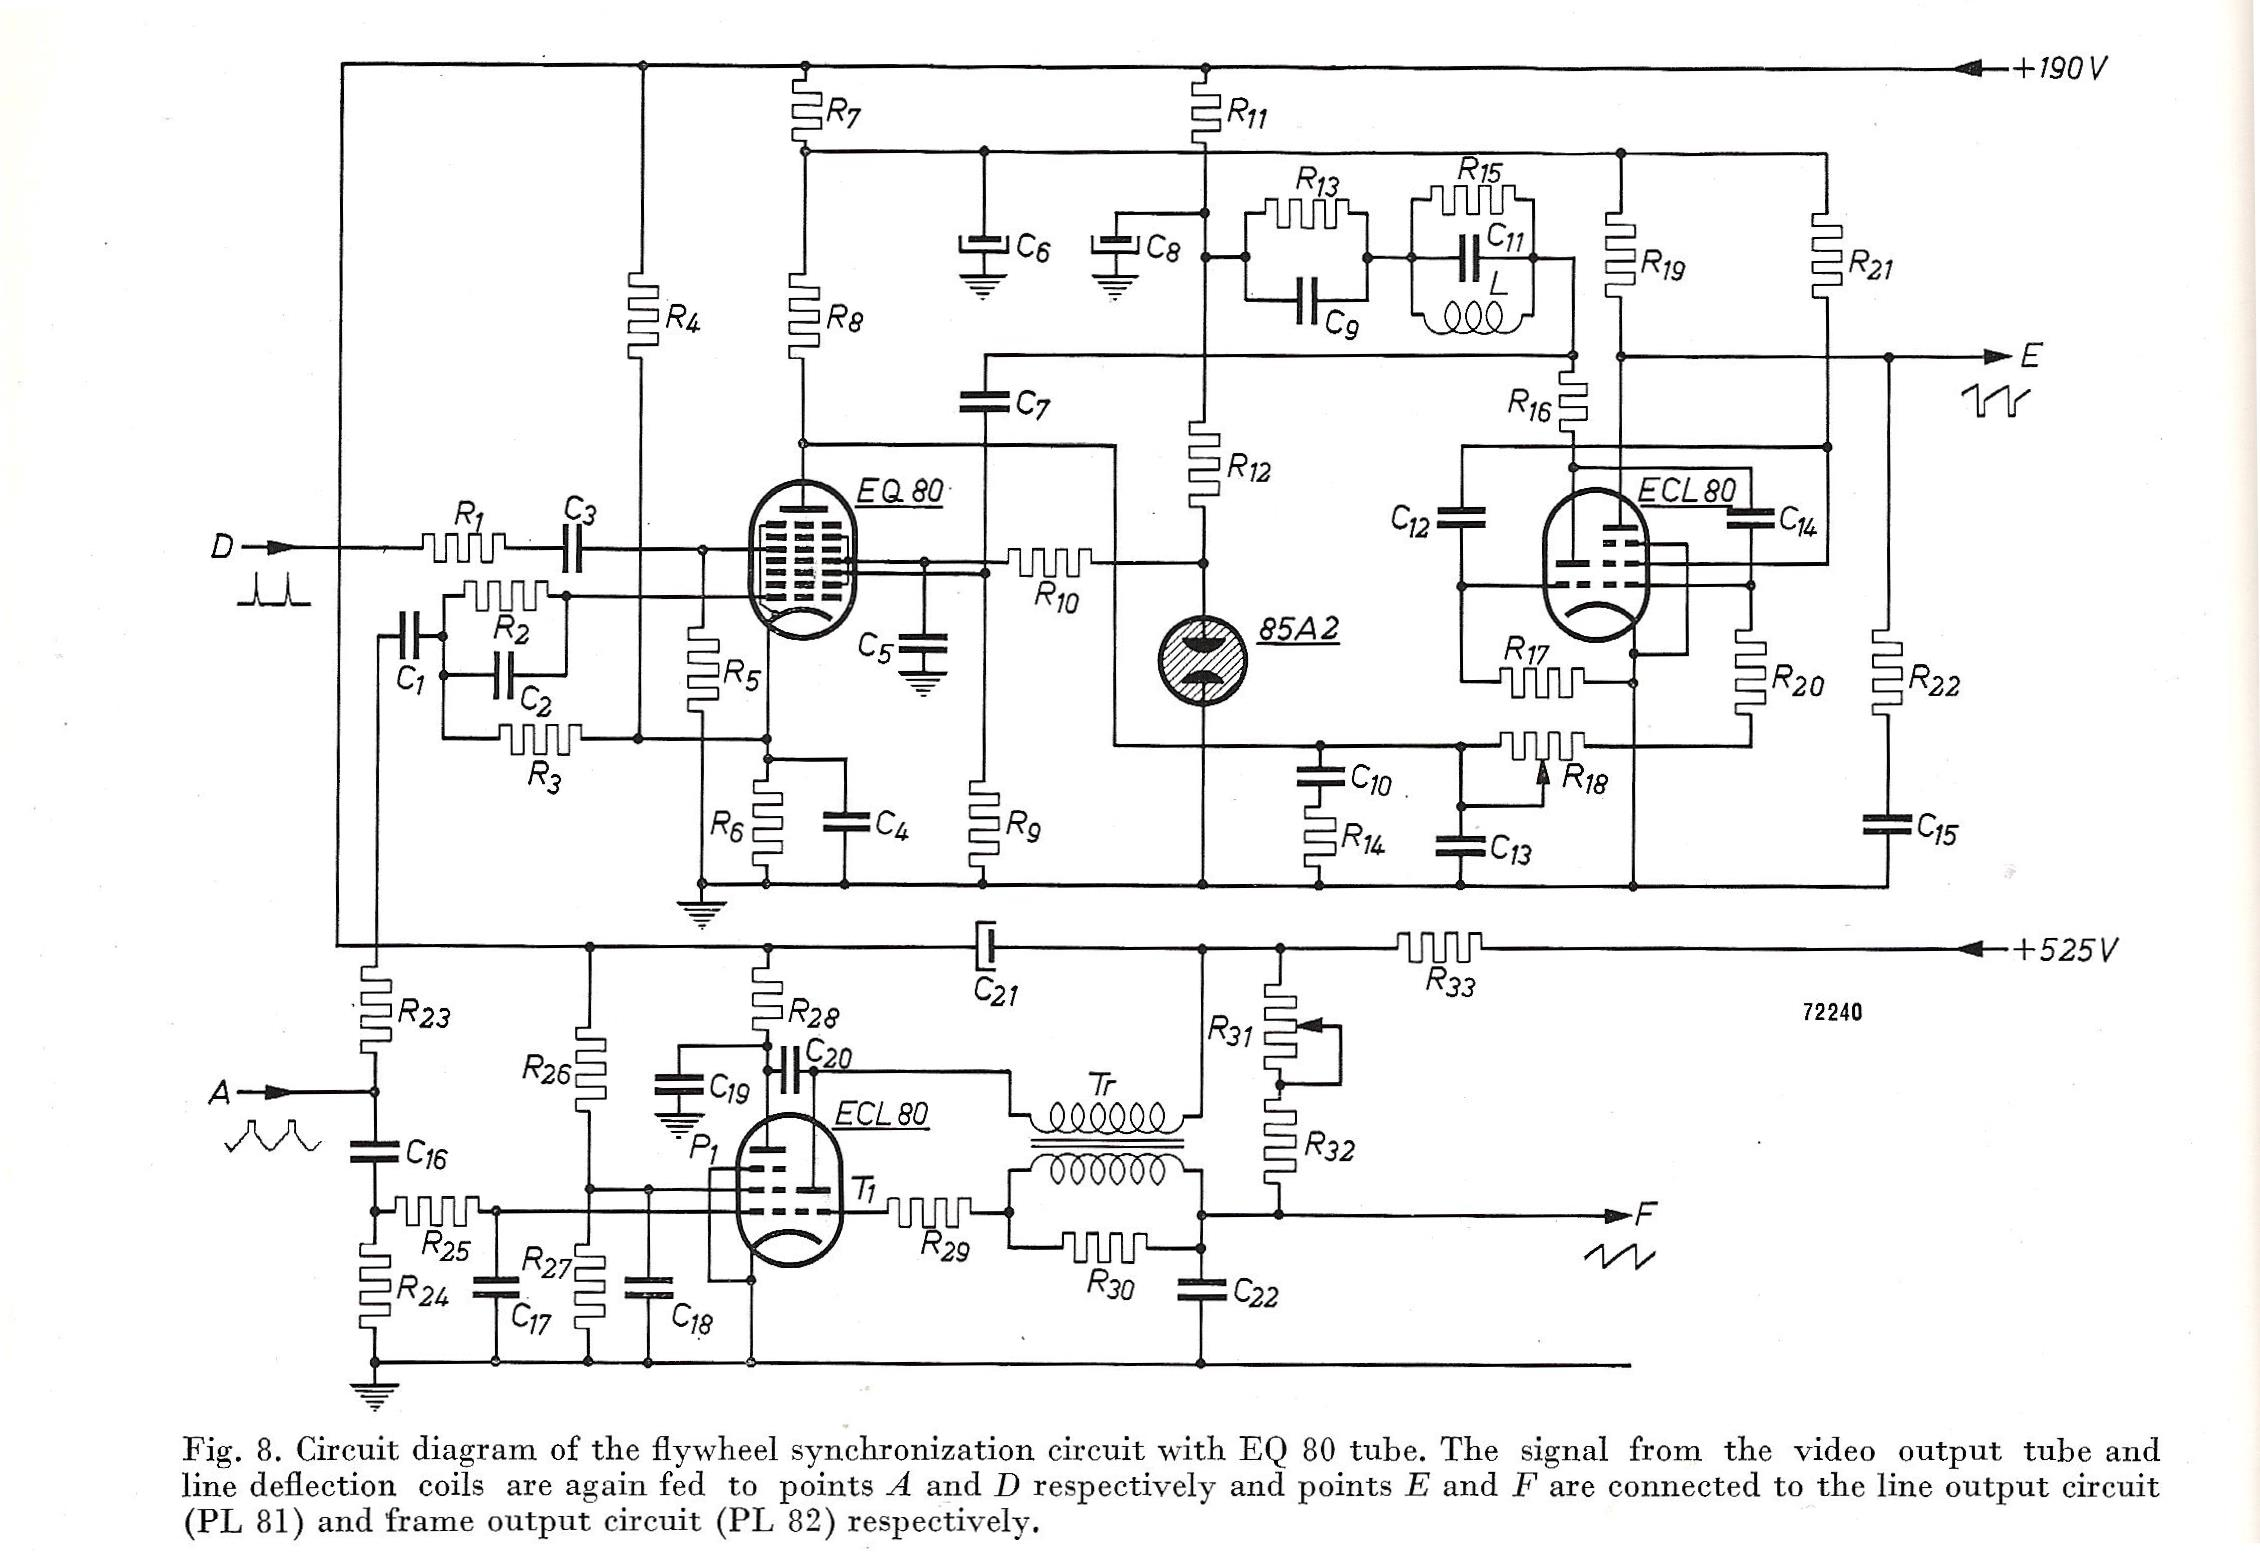 EAB_1952_EQ80_Flywheel_synchronization_3 horstmann centaurplus c17 wiring diagram schematic circuit diagram horstmann centaurplus c17 wiring diagram at arjmand.co